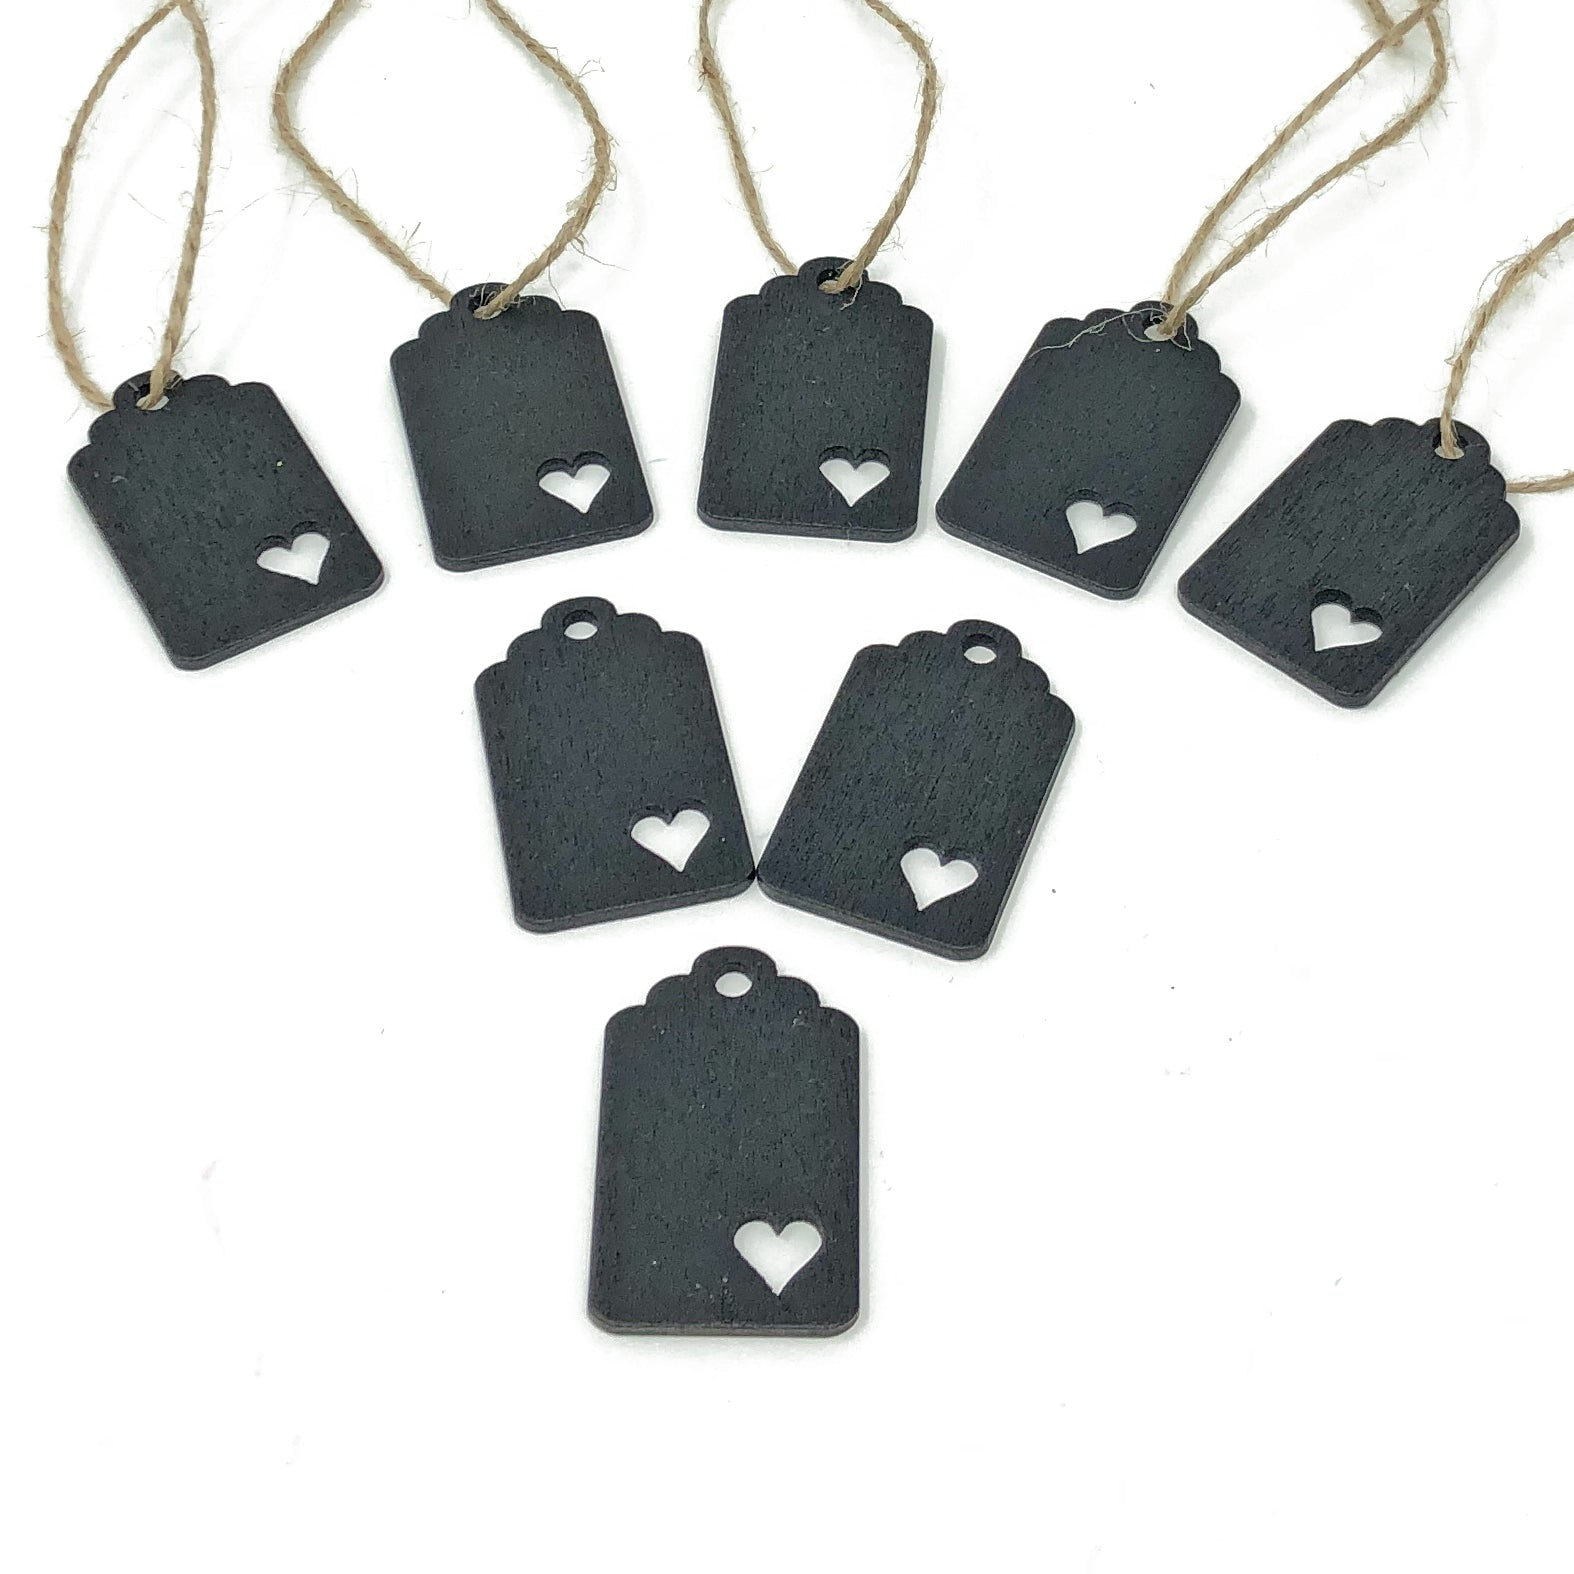 Mini Wooden Chalkboard Tags for Wedding Table Name Tags